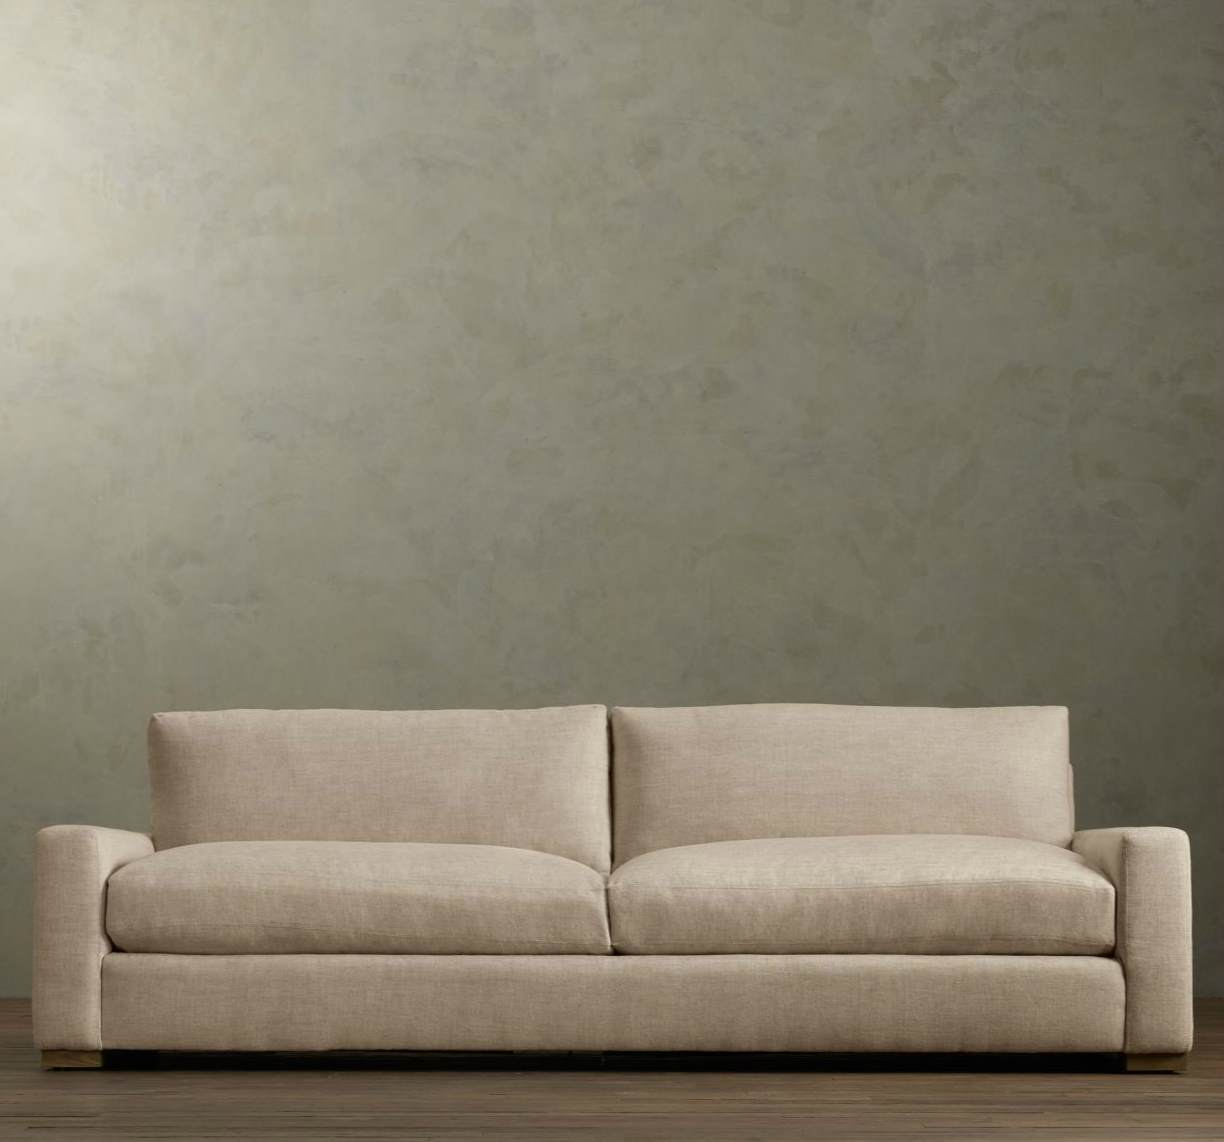 Sofa Vs Couch The Great Seating Debate